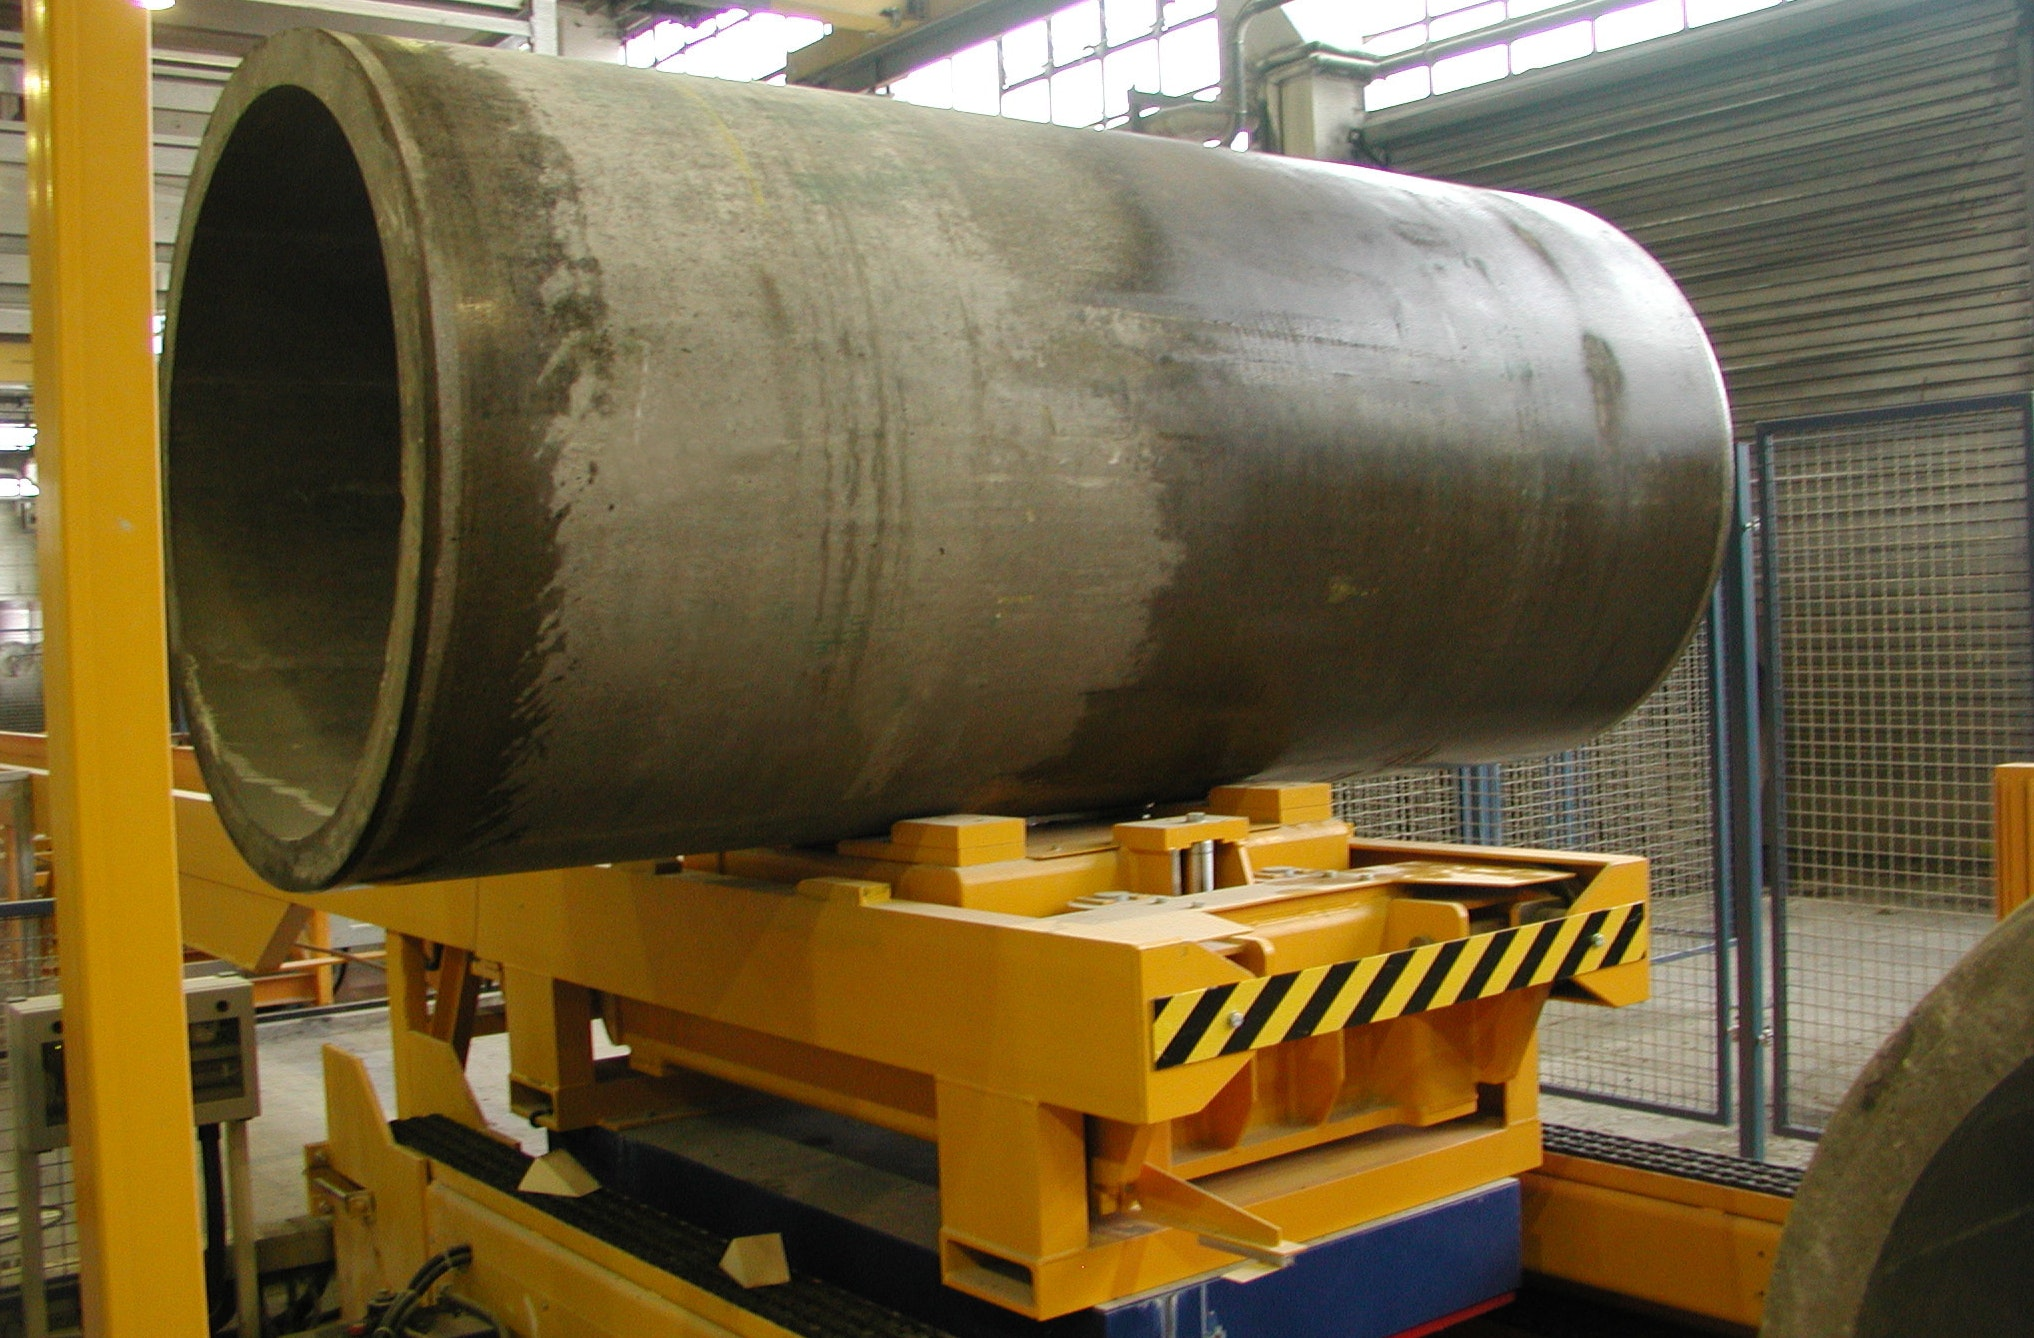 Transport car with horizontally arranged concrete pipes: This transport car, which is equipped with a lifting table, transports the pipes on a fixed transport section to the final processing.